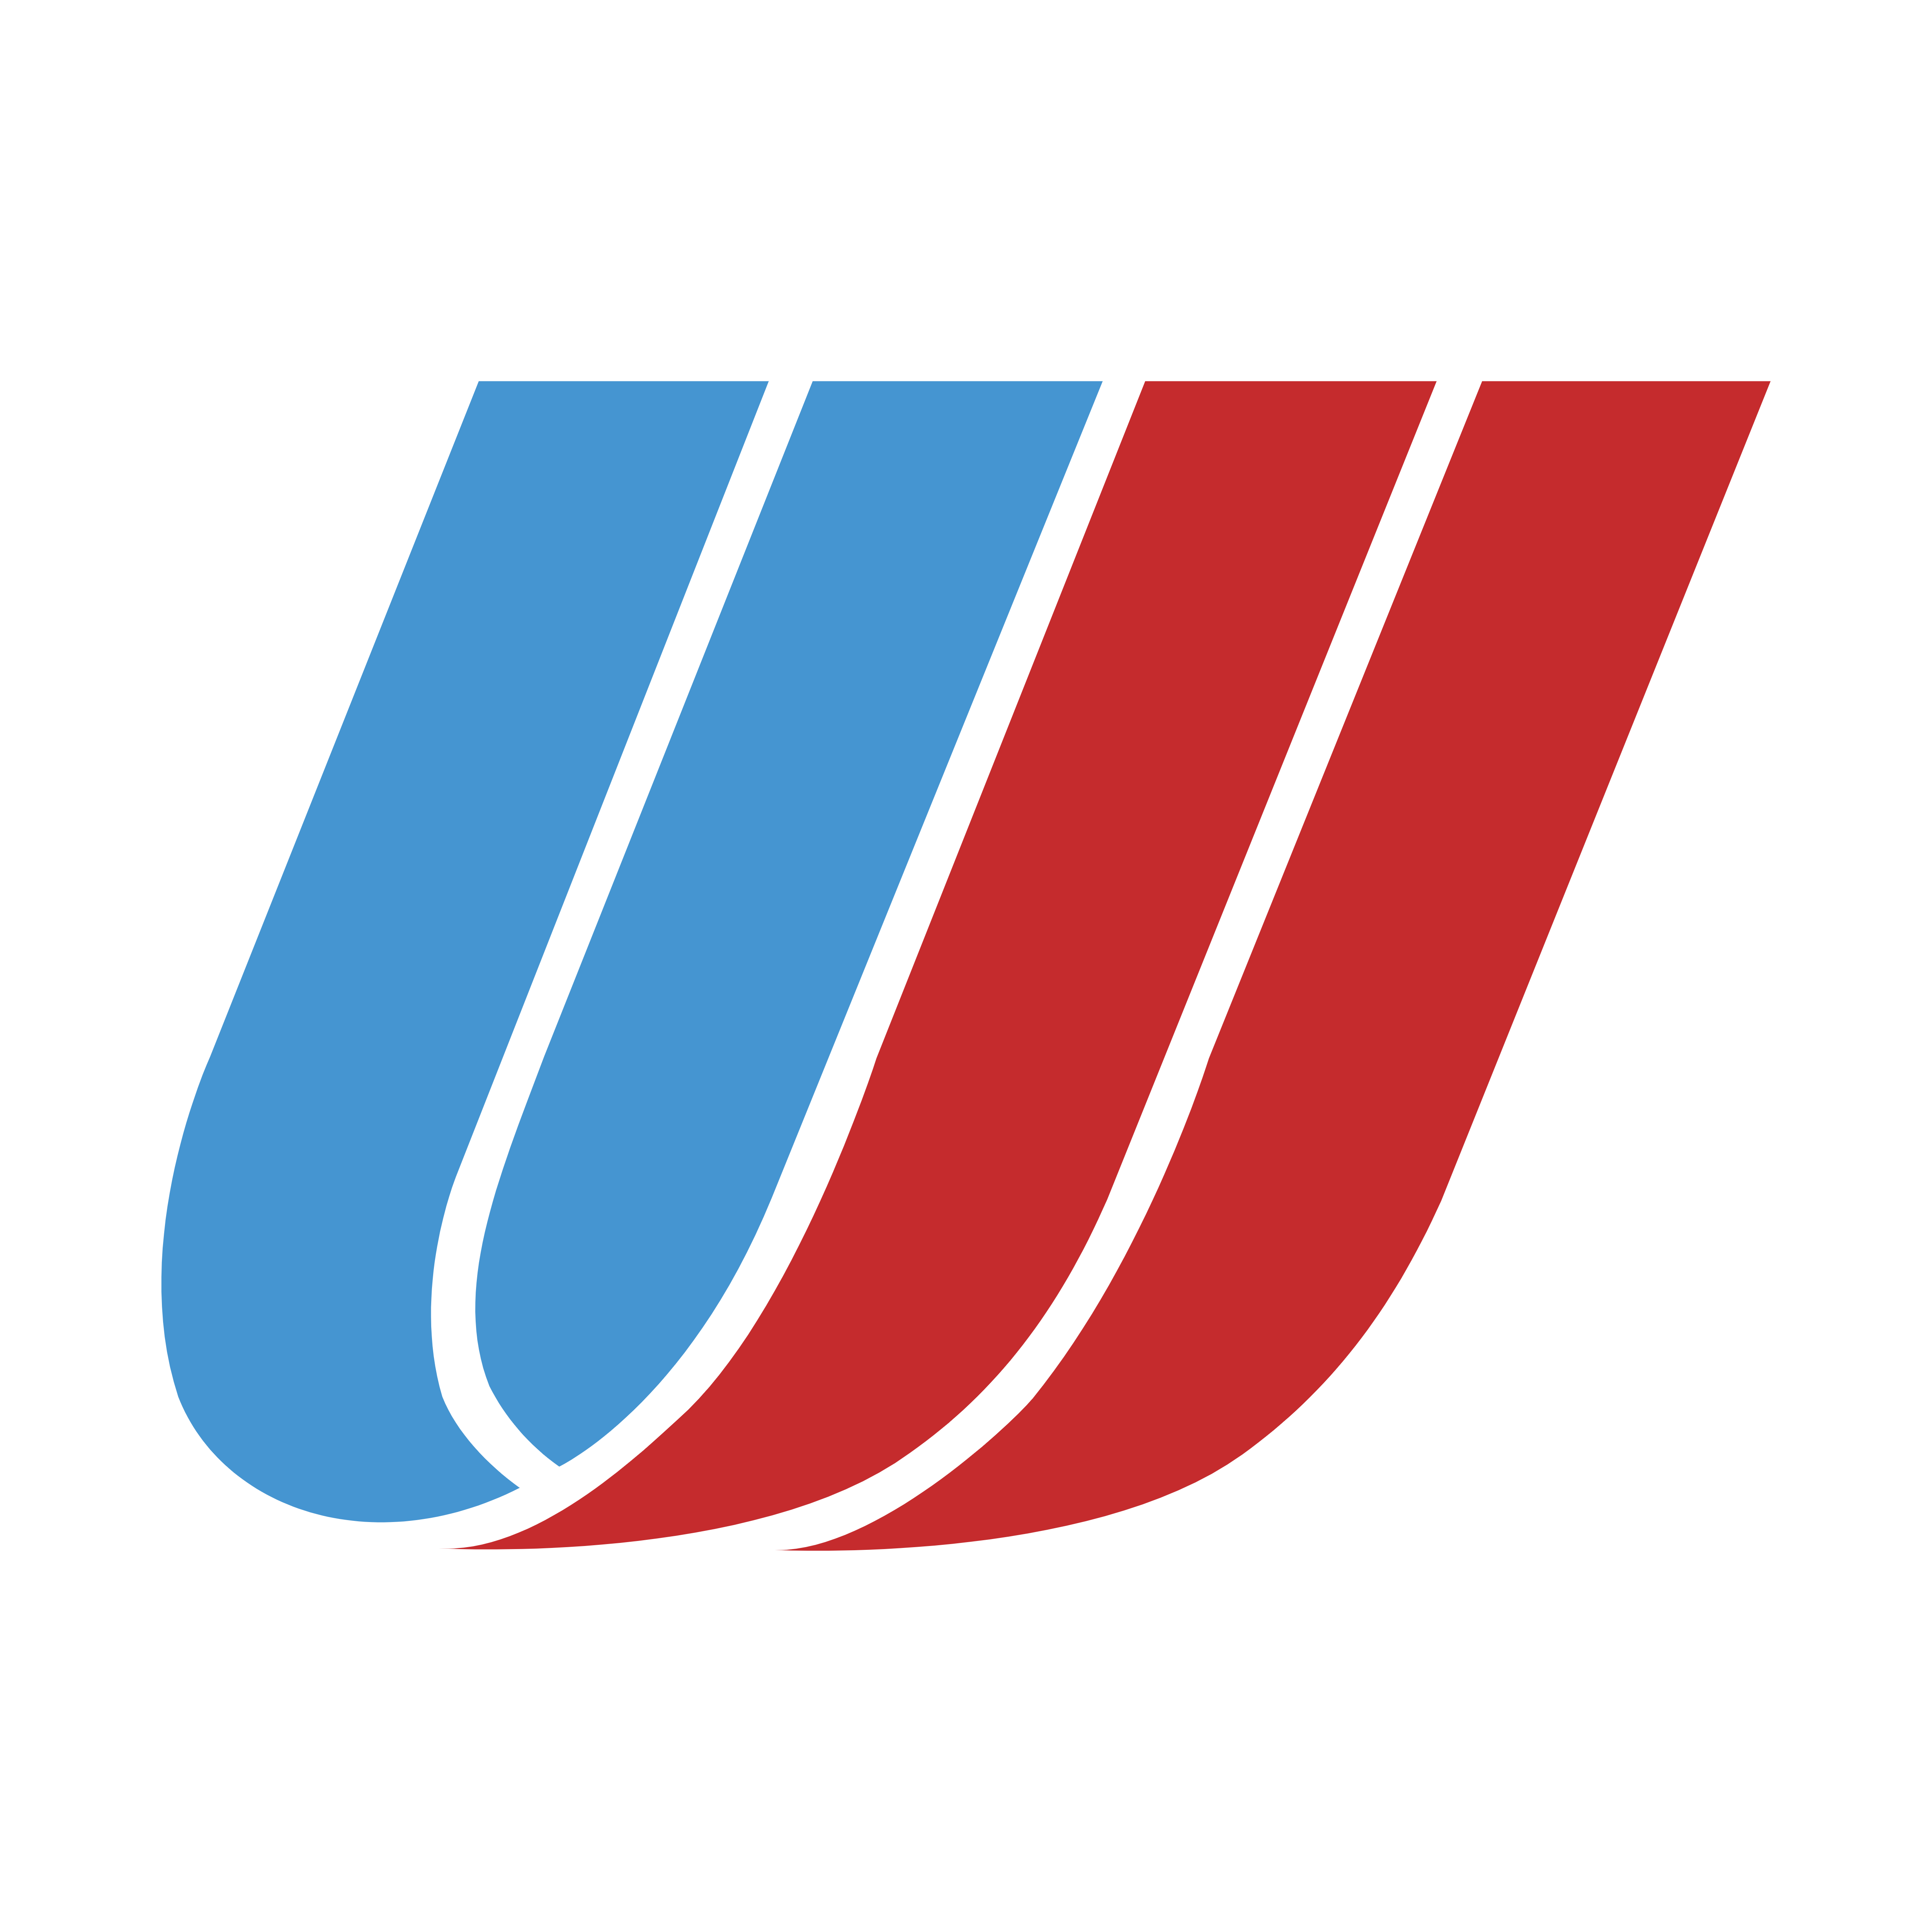 United Airlines – Logos Download - United Airlines Logo PNG